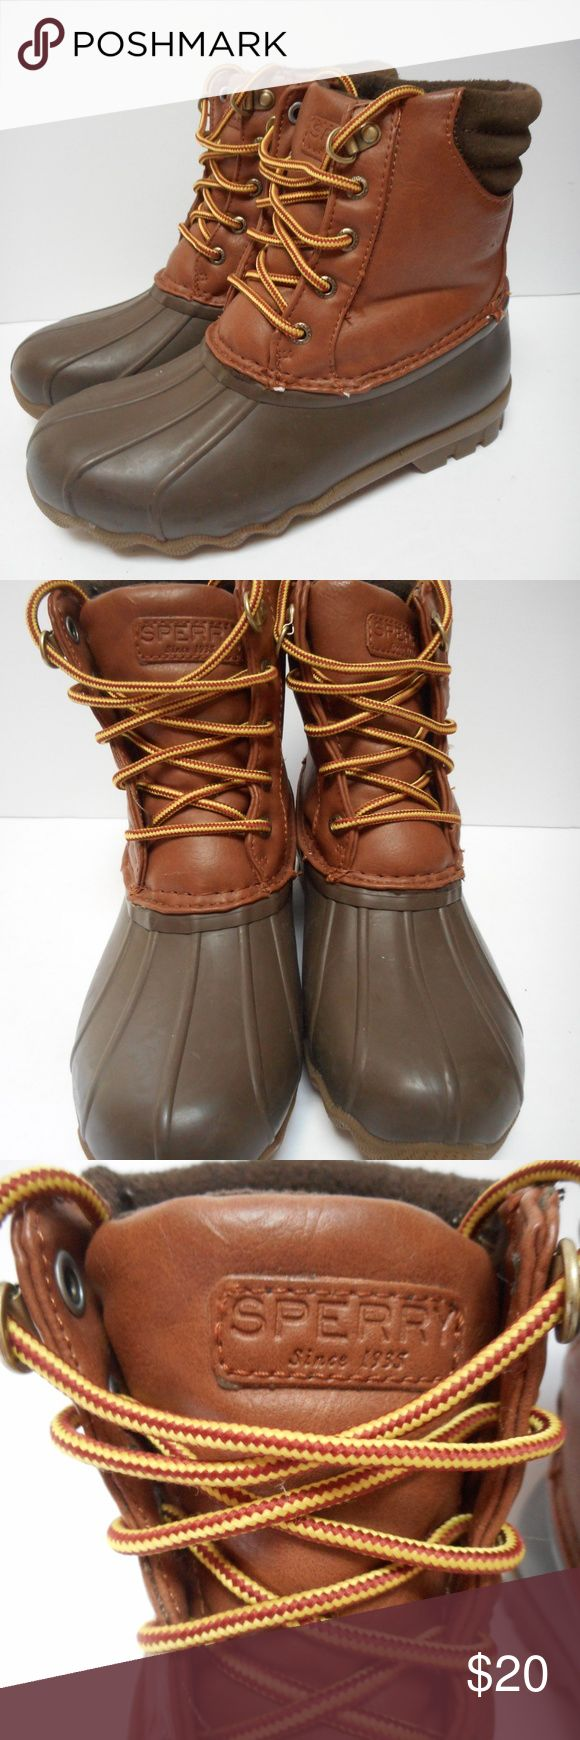 Boys Sperry Avenue Duck Boots Tan Brown Sperry Avenue Duck Boots  Boys size 3 medium Tan & brown Lace up Waterproof rubber boots with faux leather upper  Very good condition - no flaws or wear - name written on  bottom is barely visible Sperry Shoes Boots